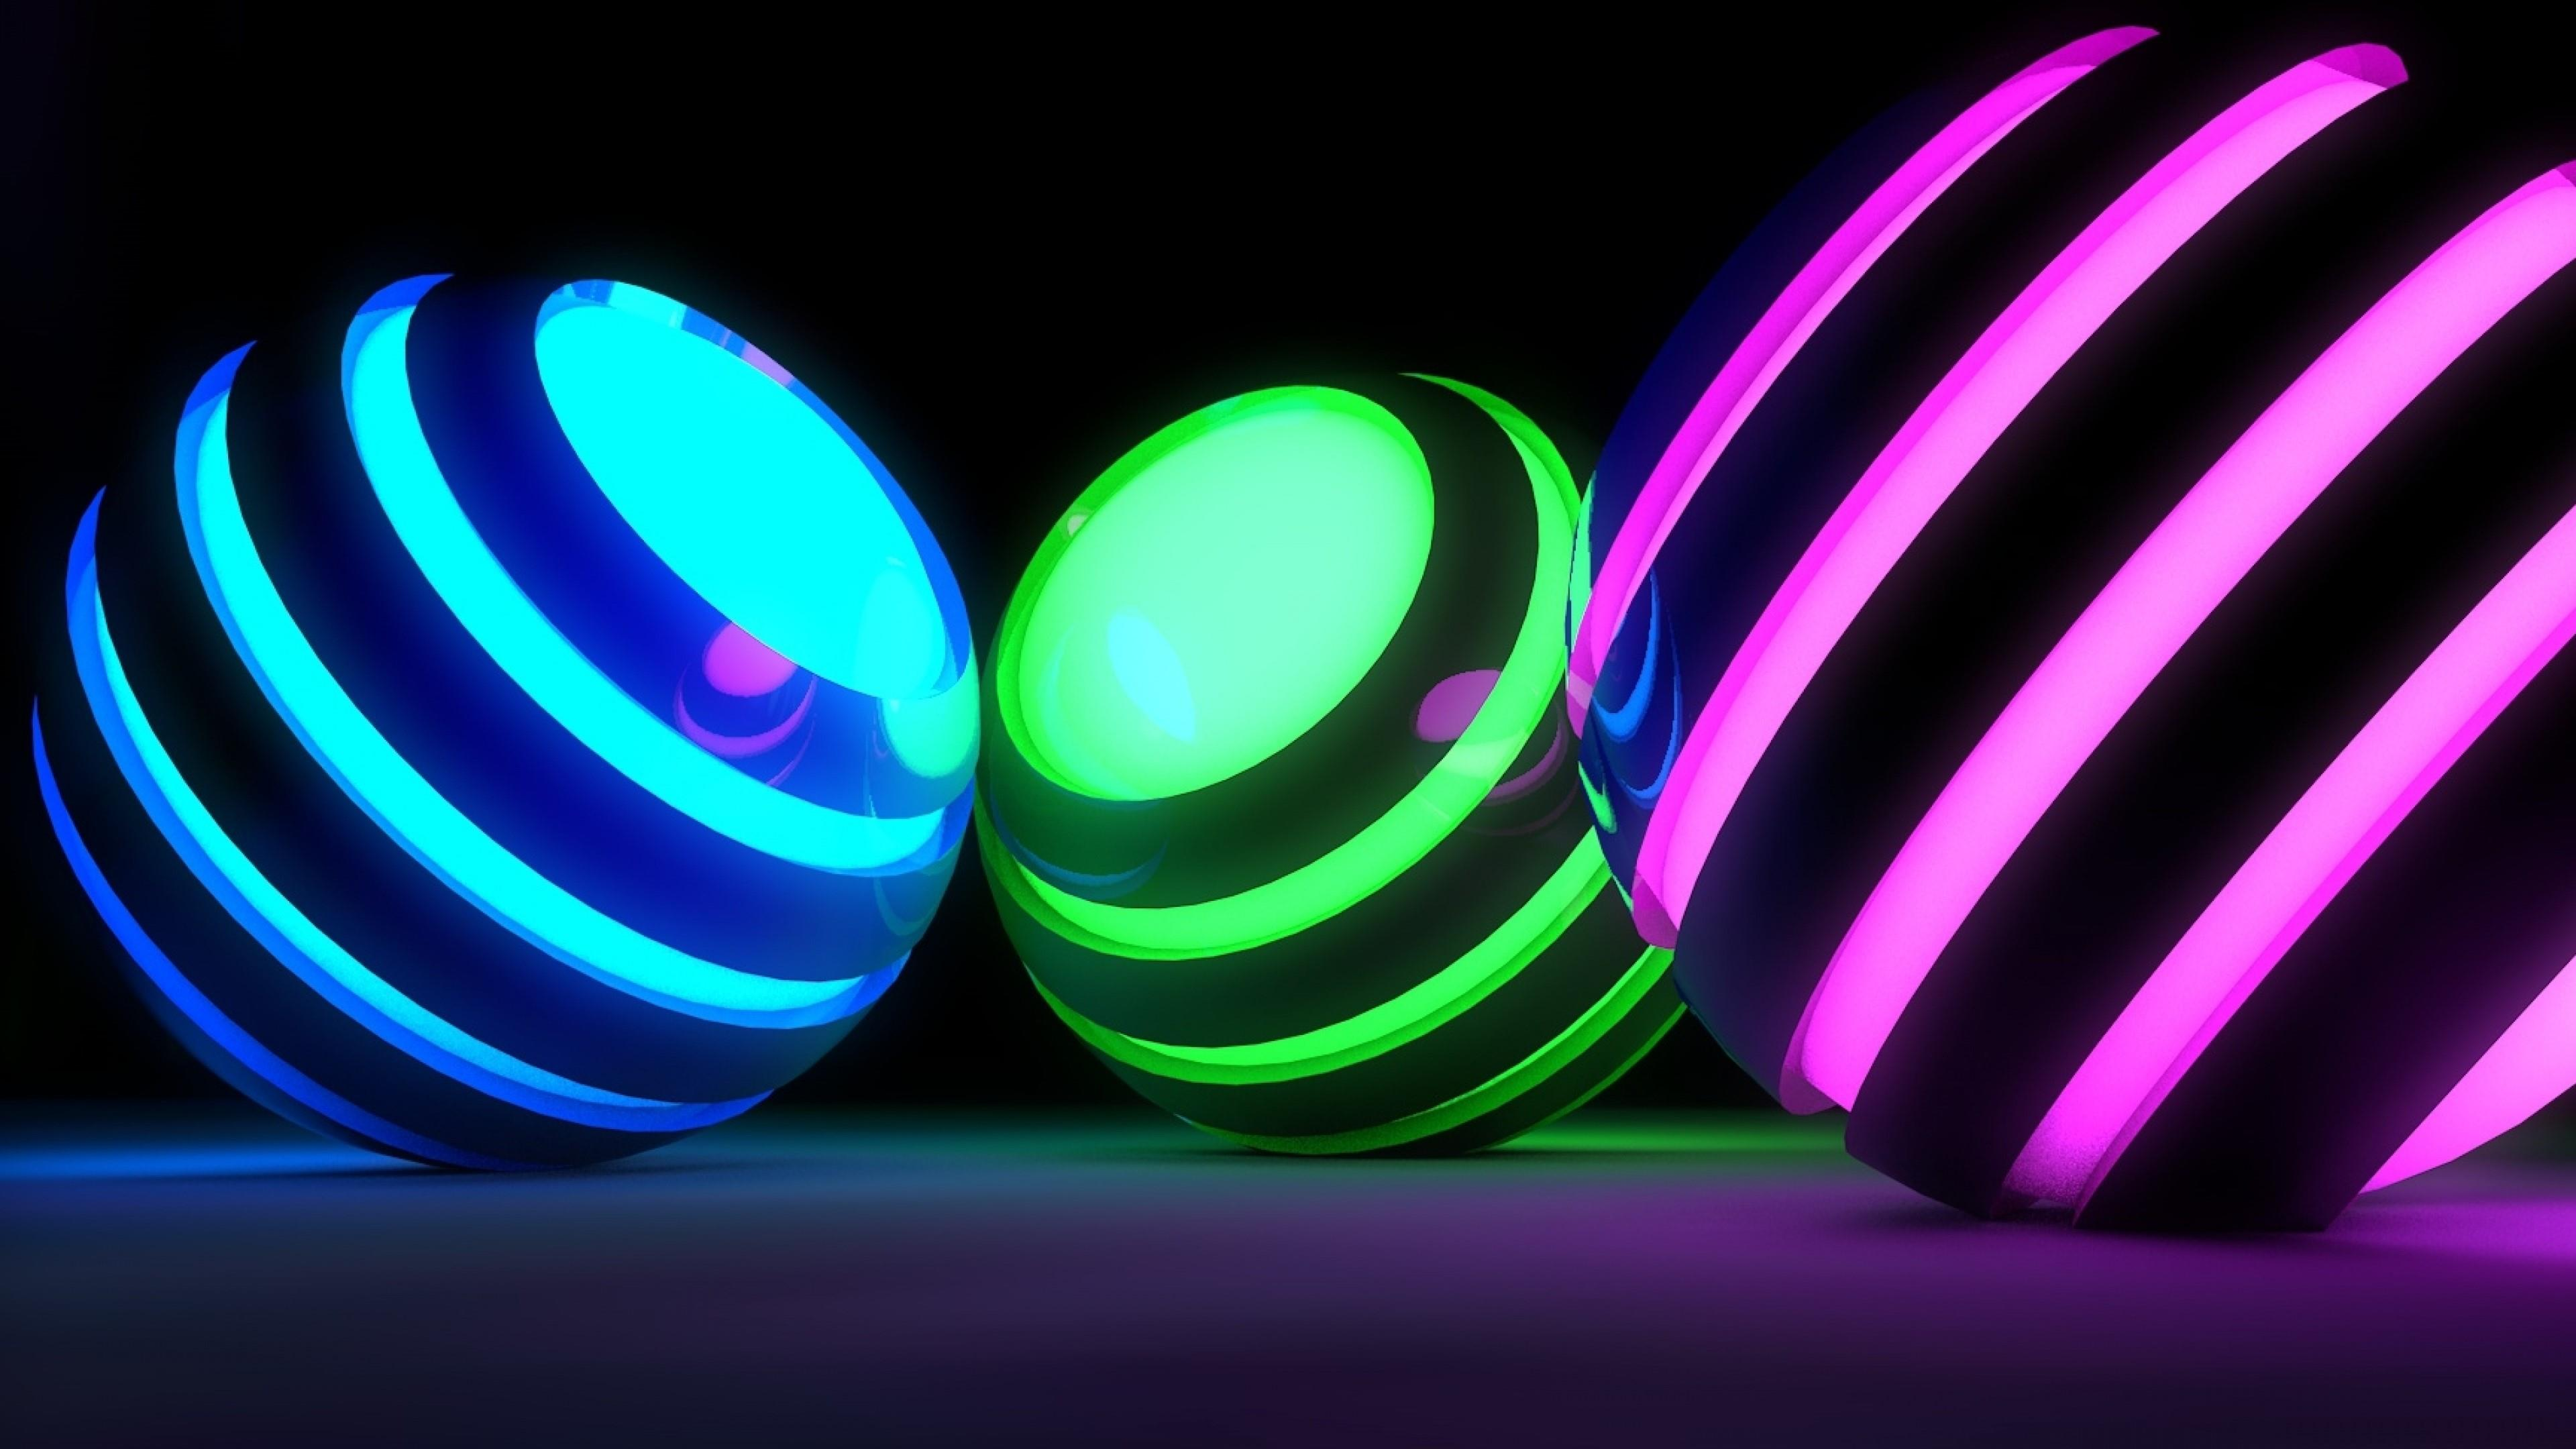 3D illuminating spheres wallpaper